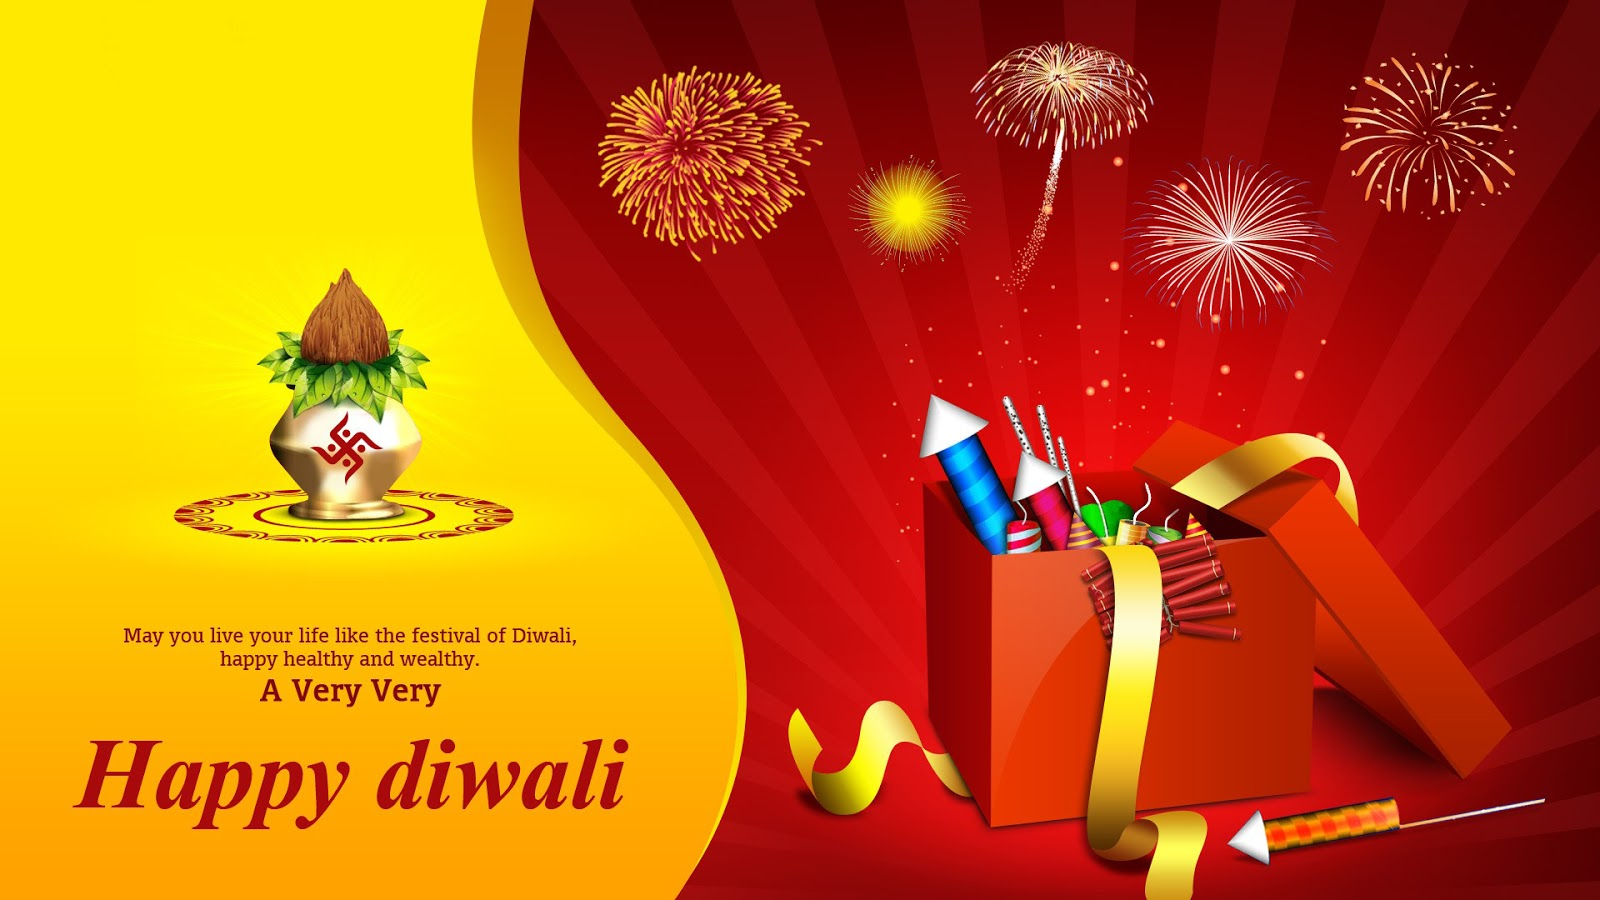 Top crackers images for diwali 2016 carscoops top crackers images for diwali 2016 kristyandbryce Image collections